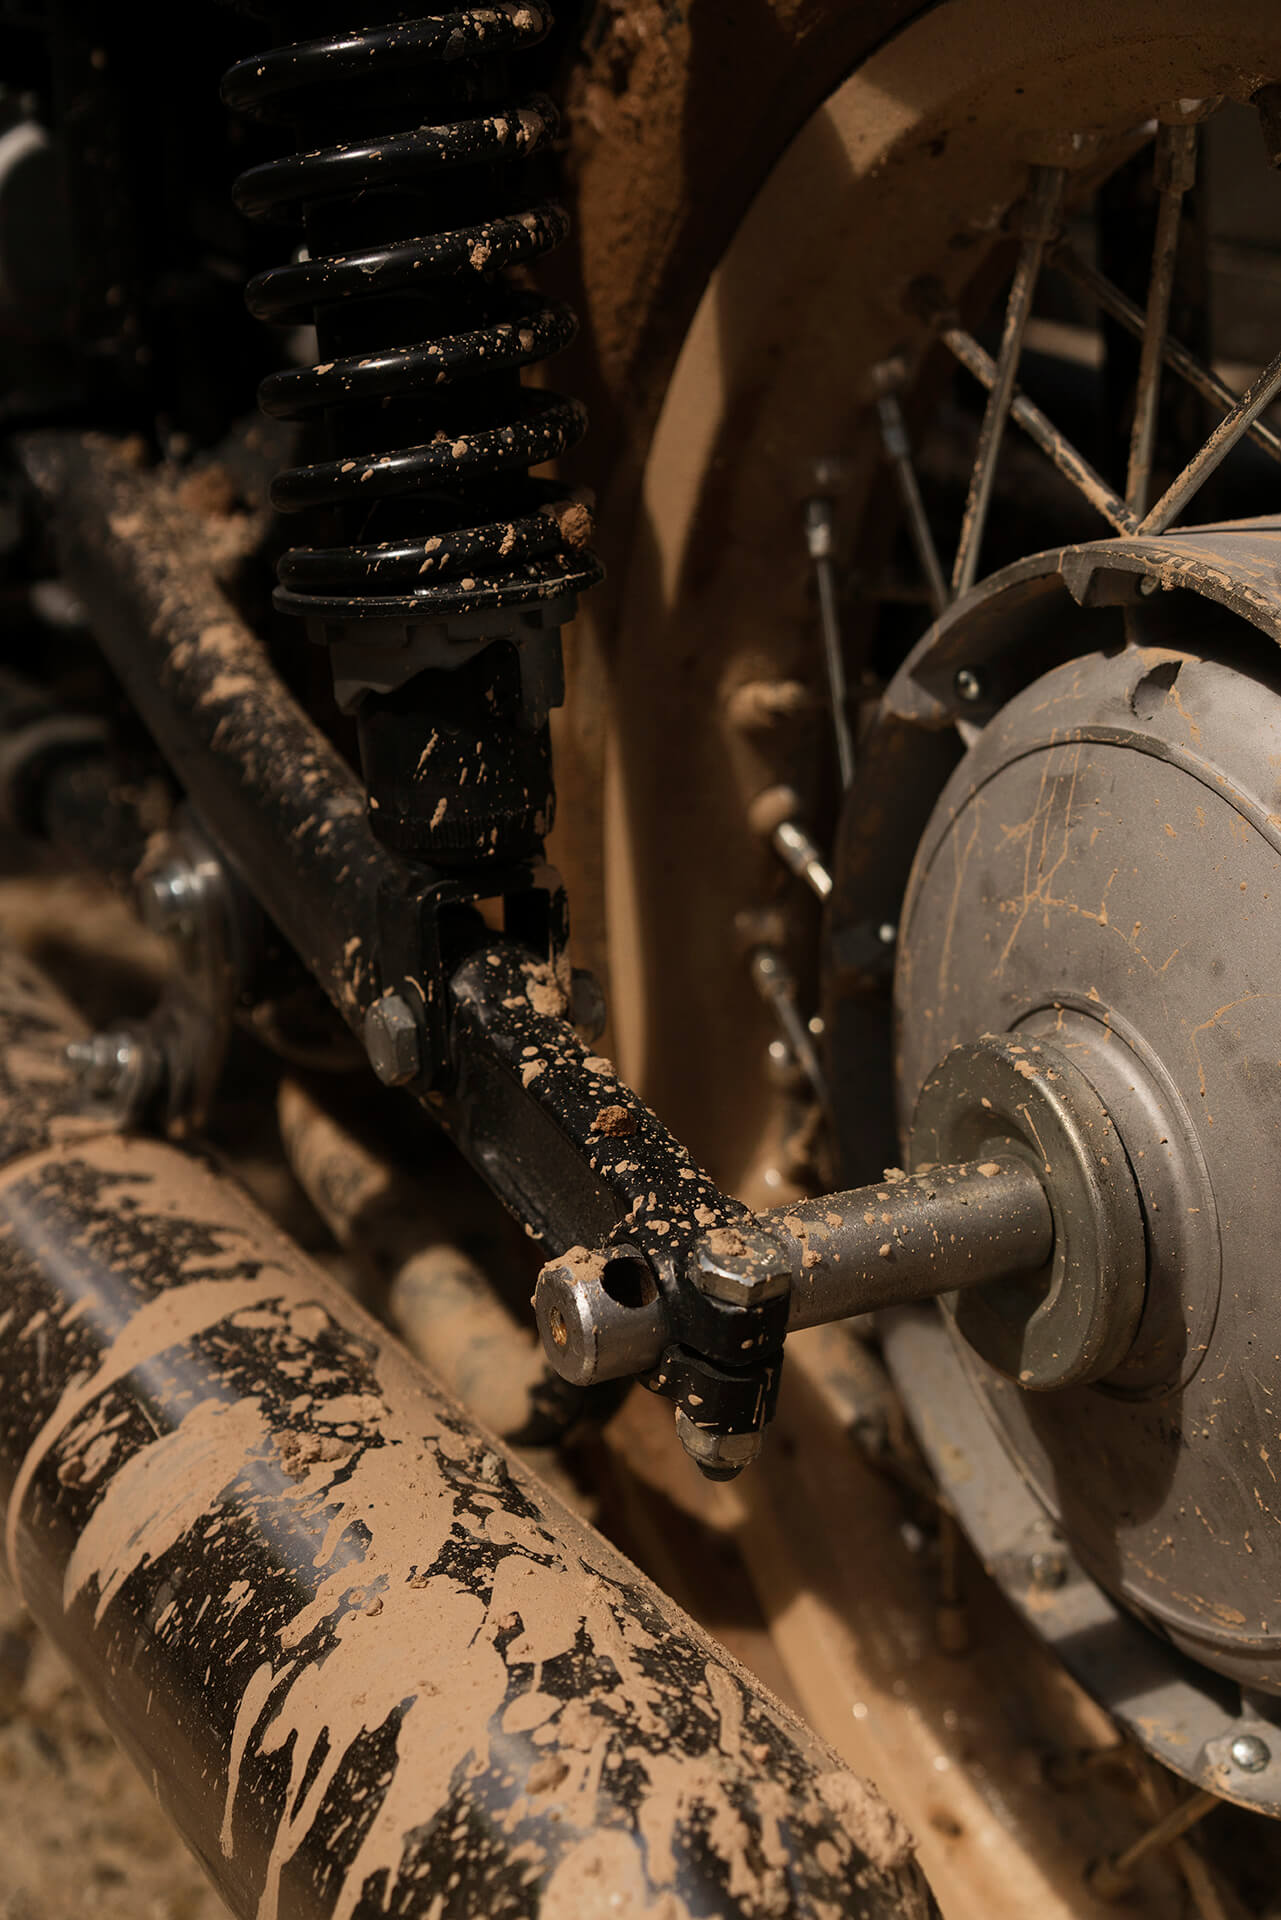 A muddied closeup of the Ural's parts.